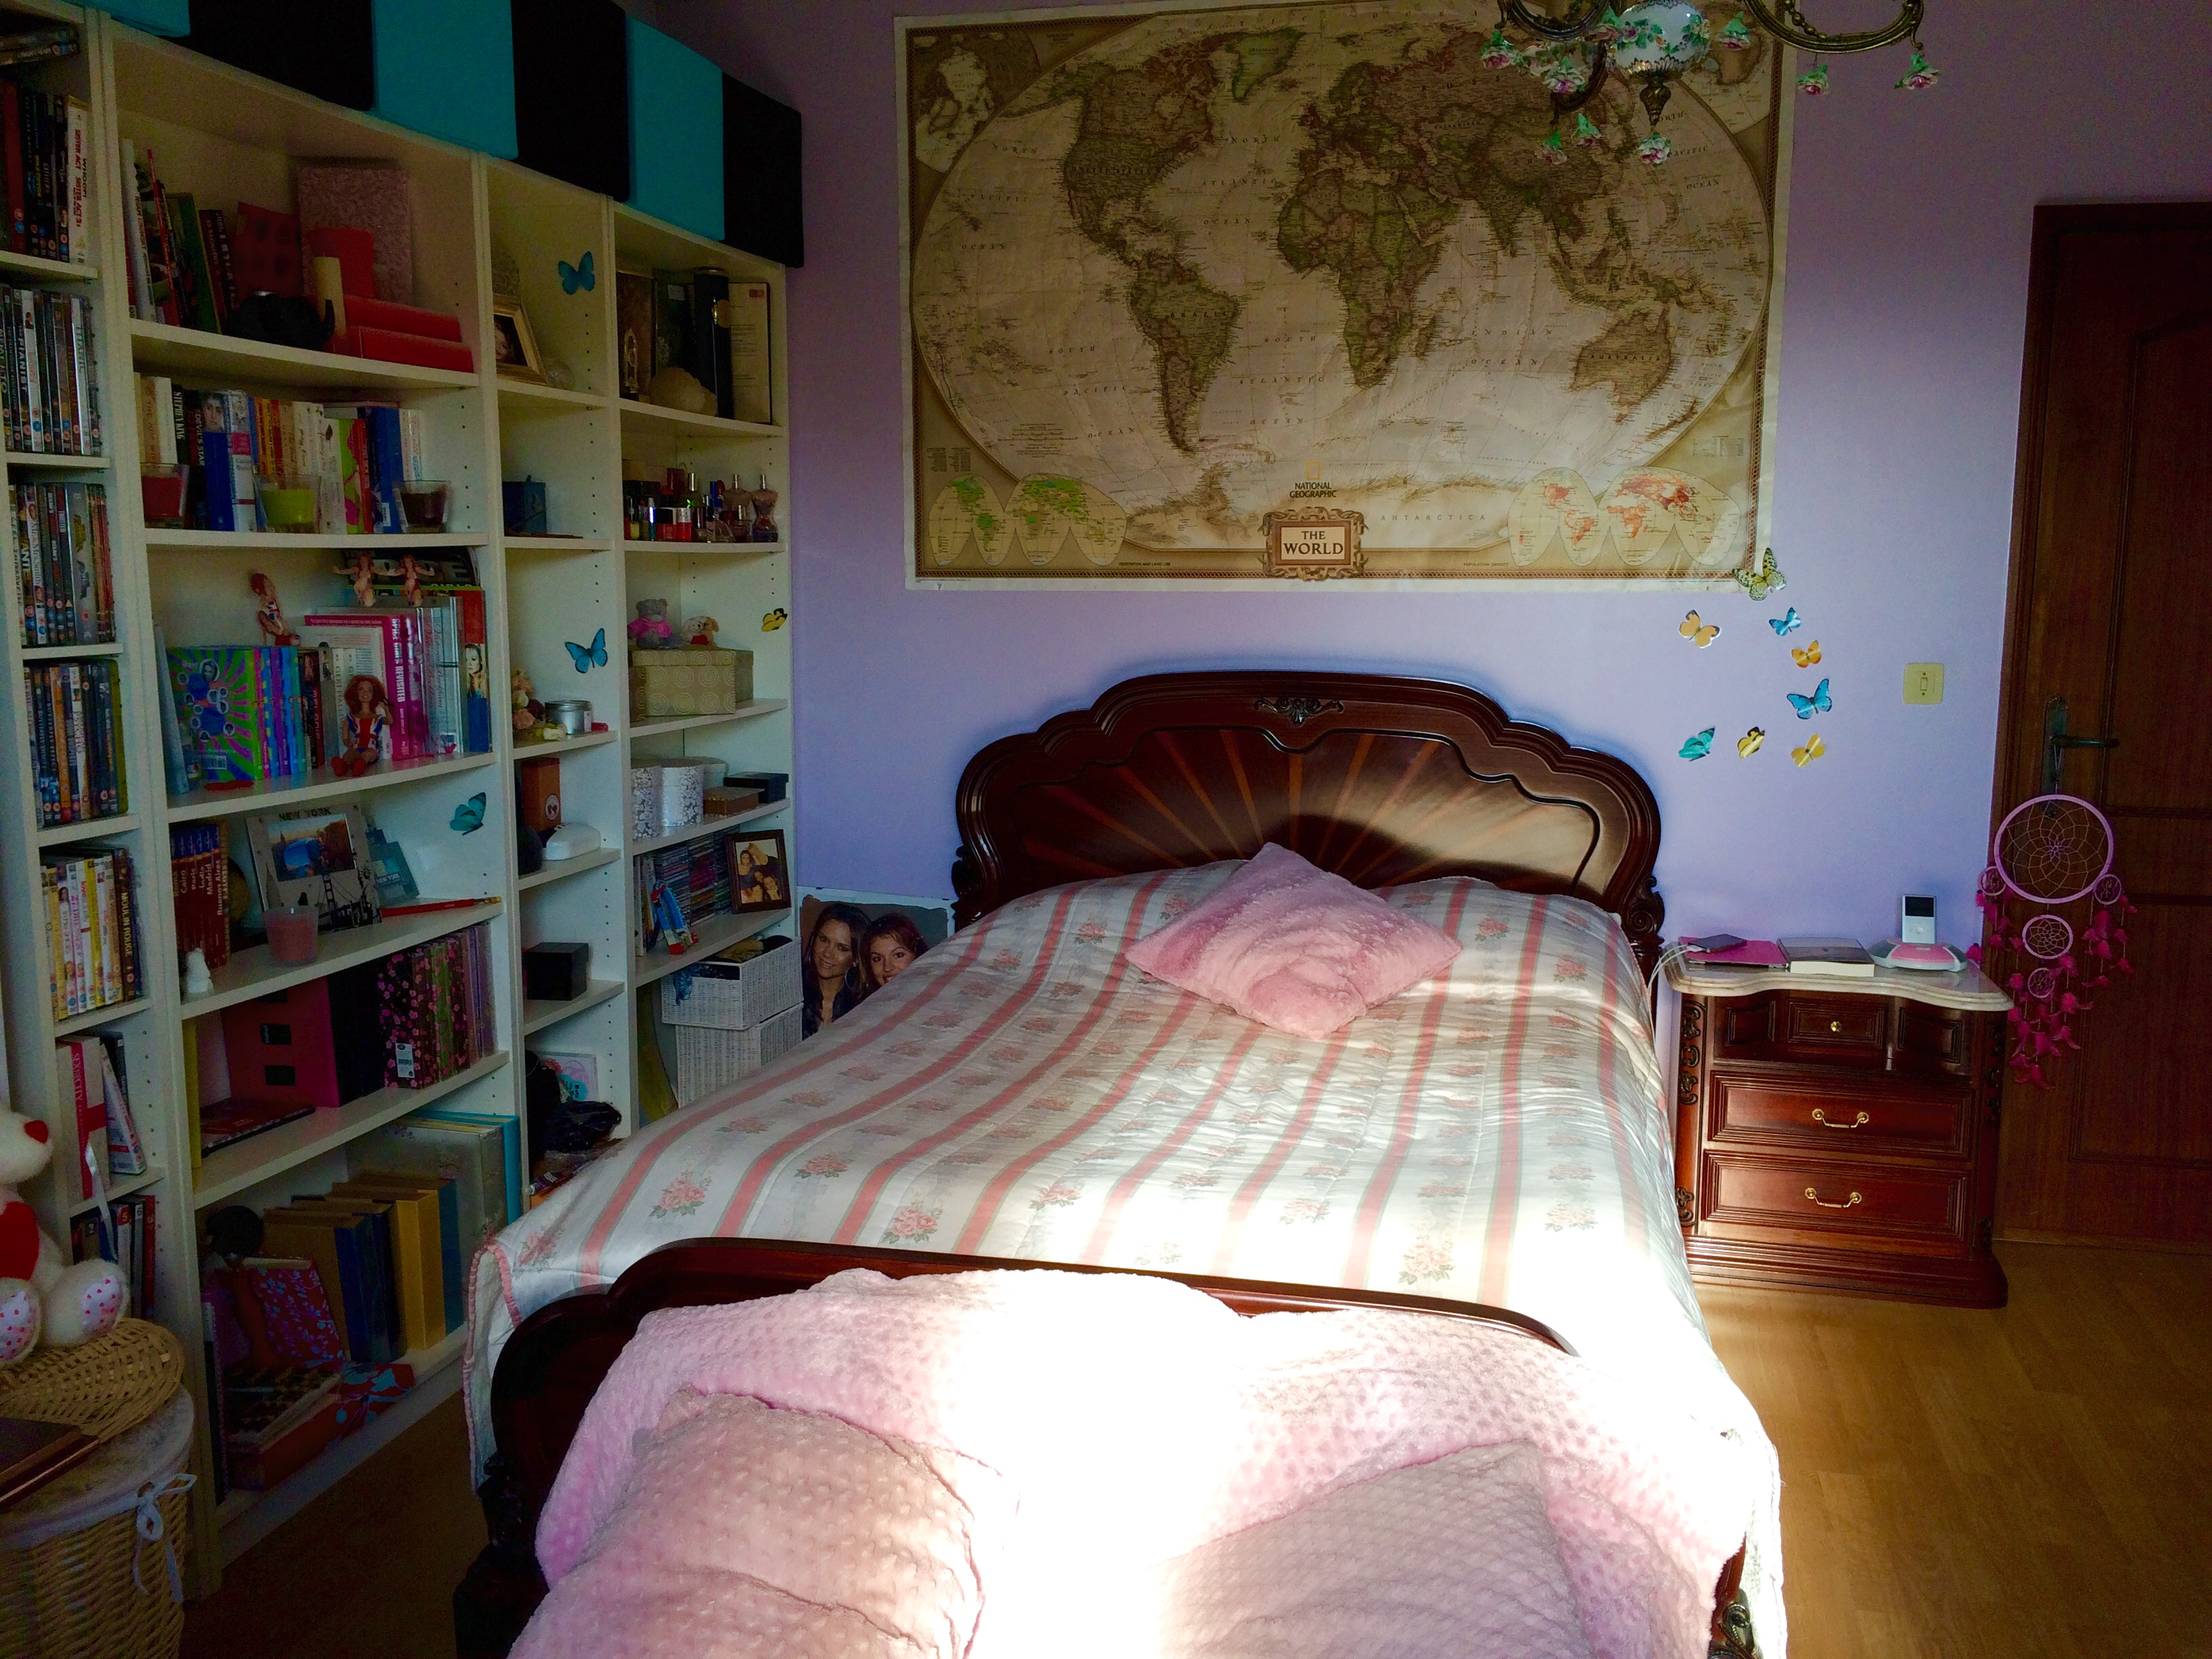 Visualize your dreams - my room